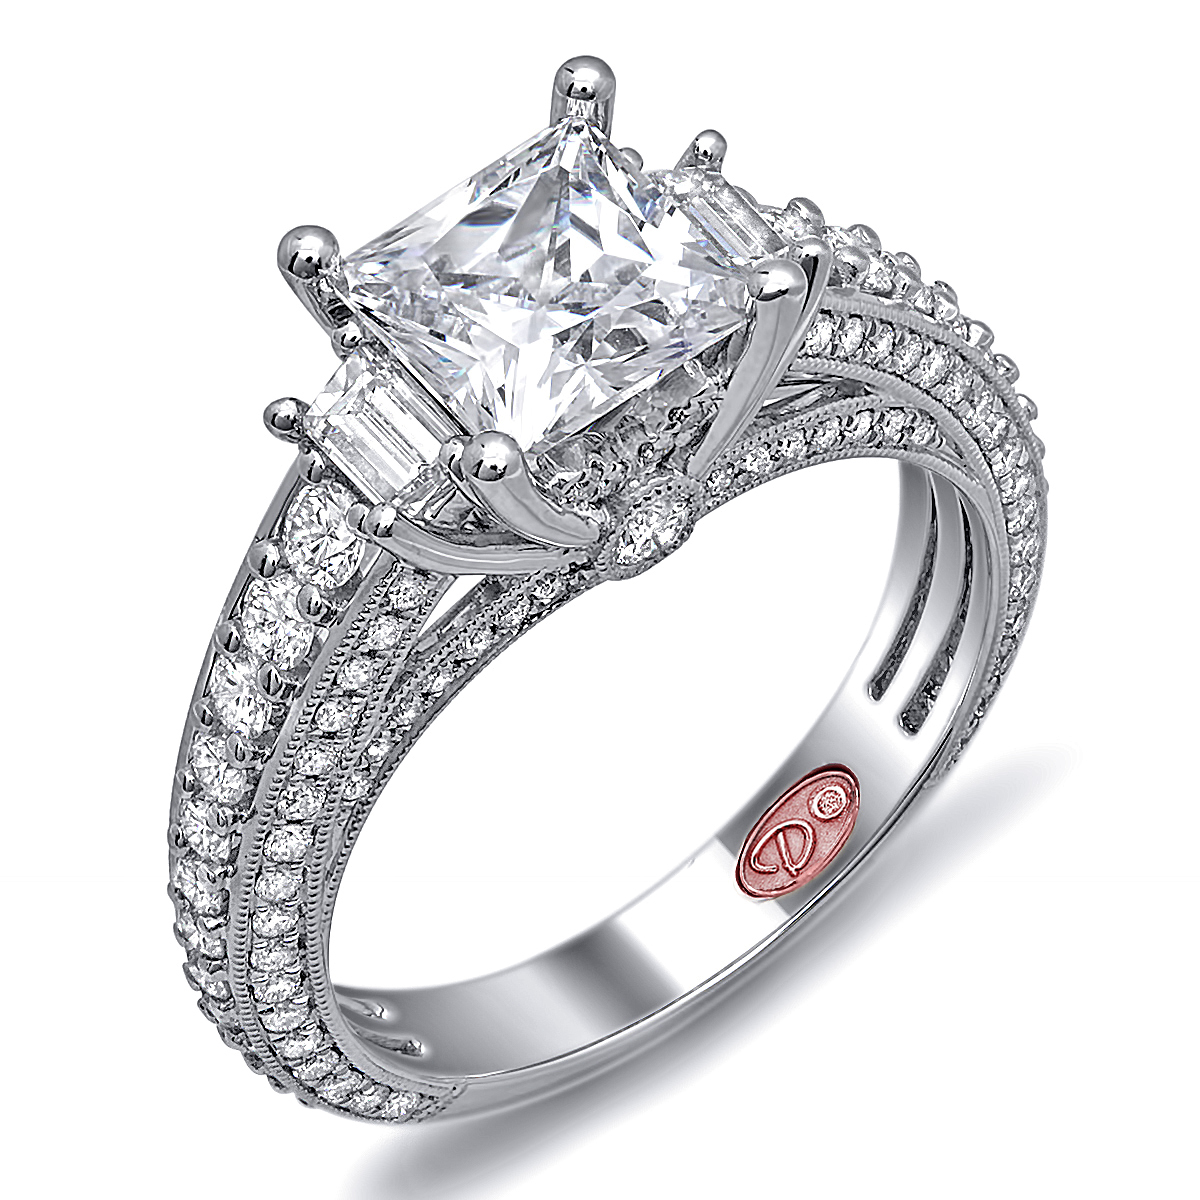 hannoush jewelers unique engagement rings dw6018 - Fancy Wedding Rings